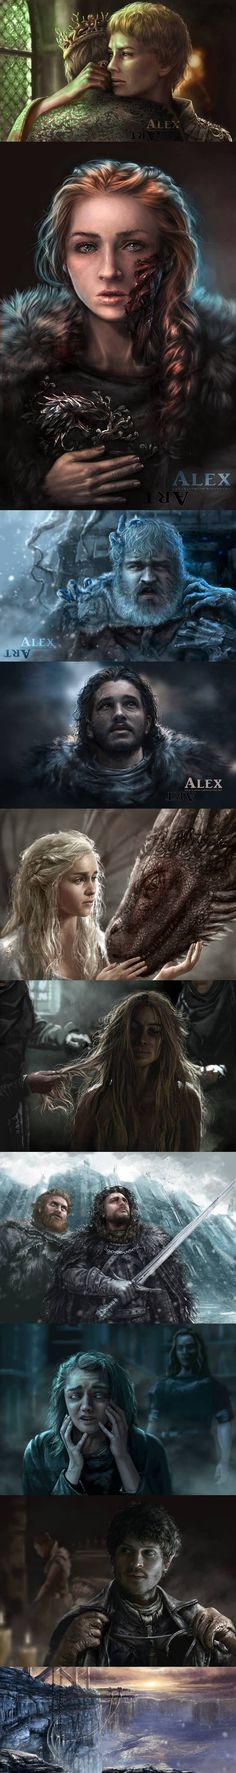 game-of-thrones-alex-art.jpg 653×4,907 píxeles